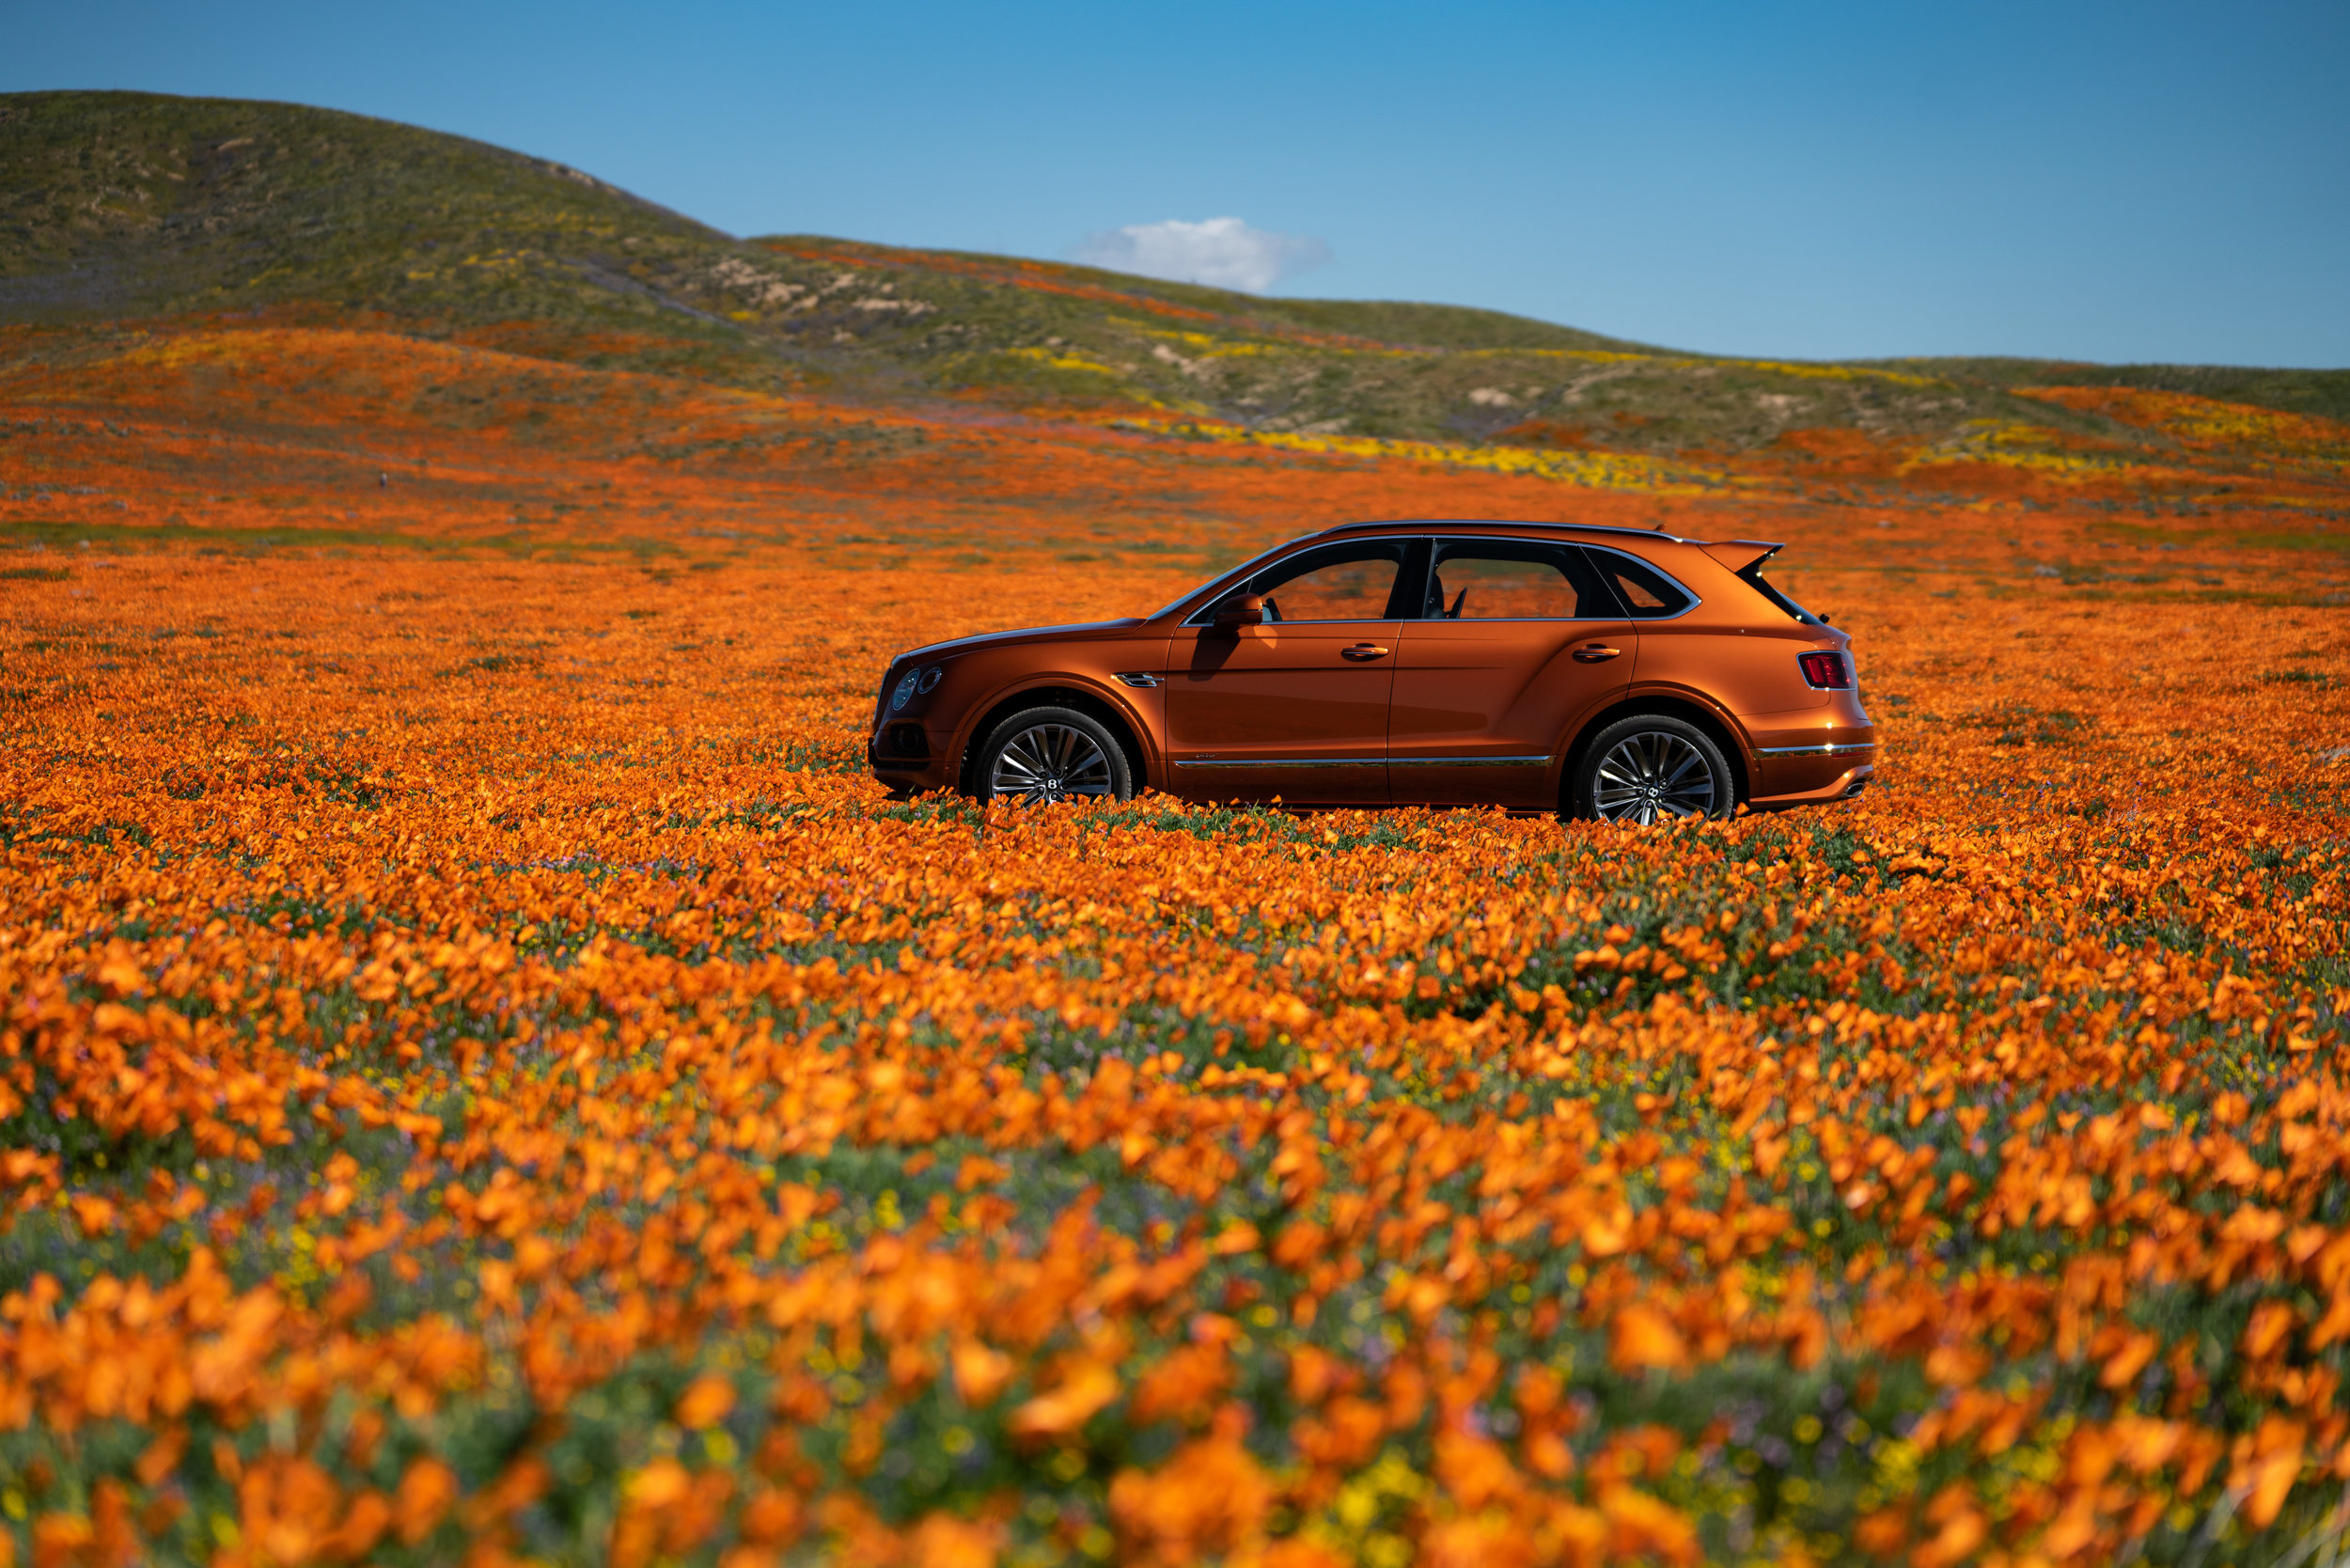 Bentley Bentayga Speed, amid the Poppies of the Antelope Valley